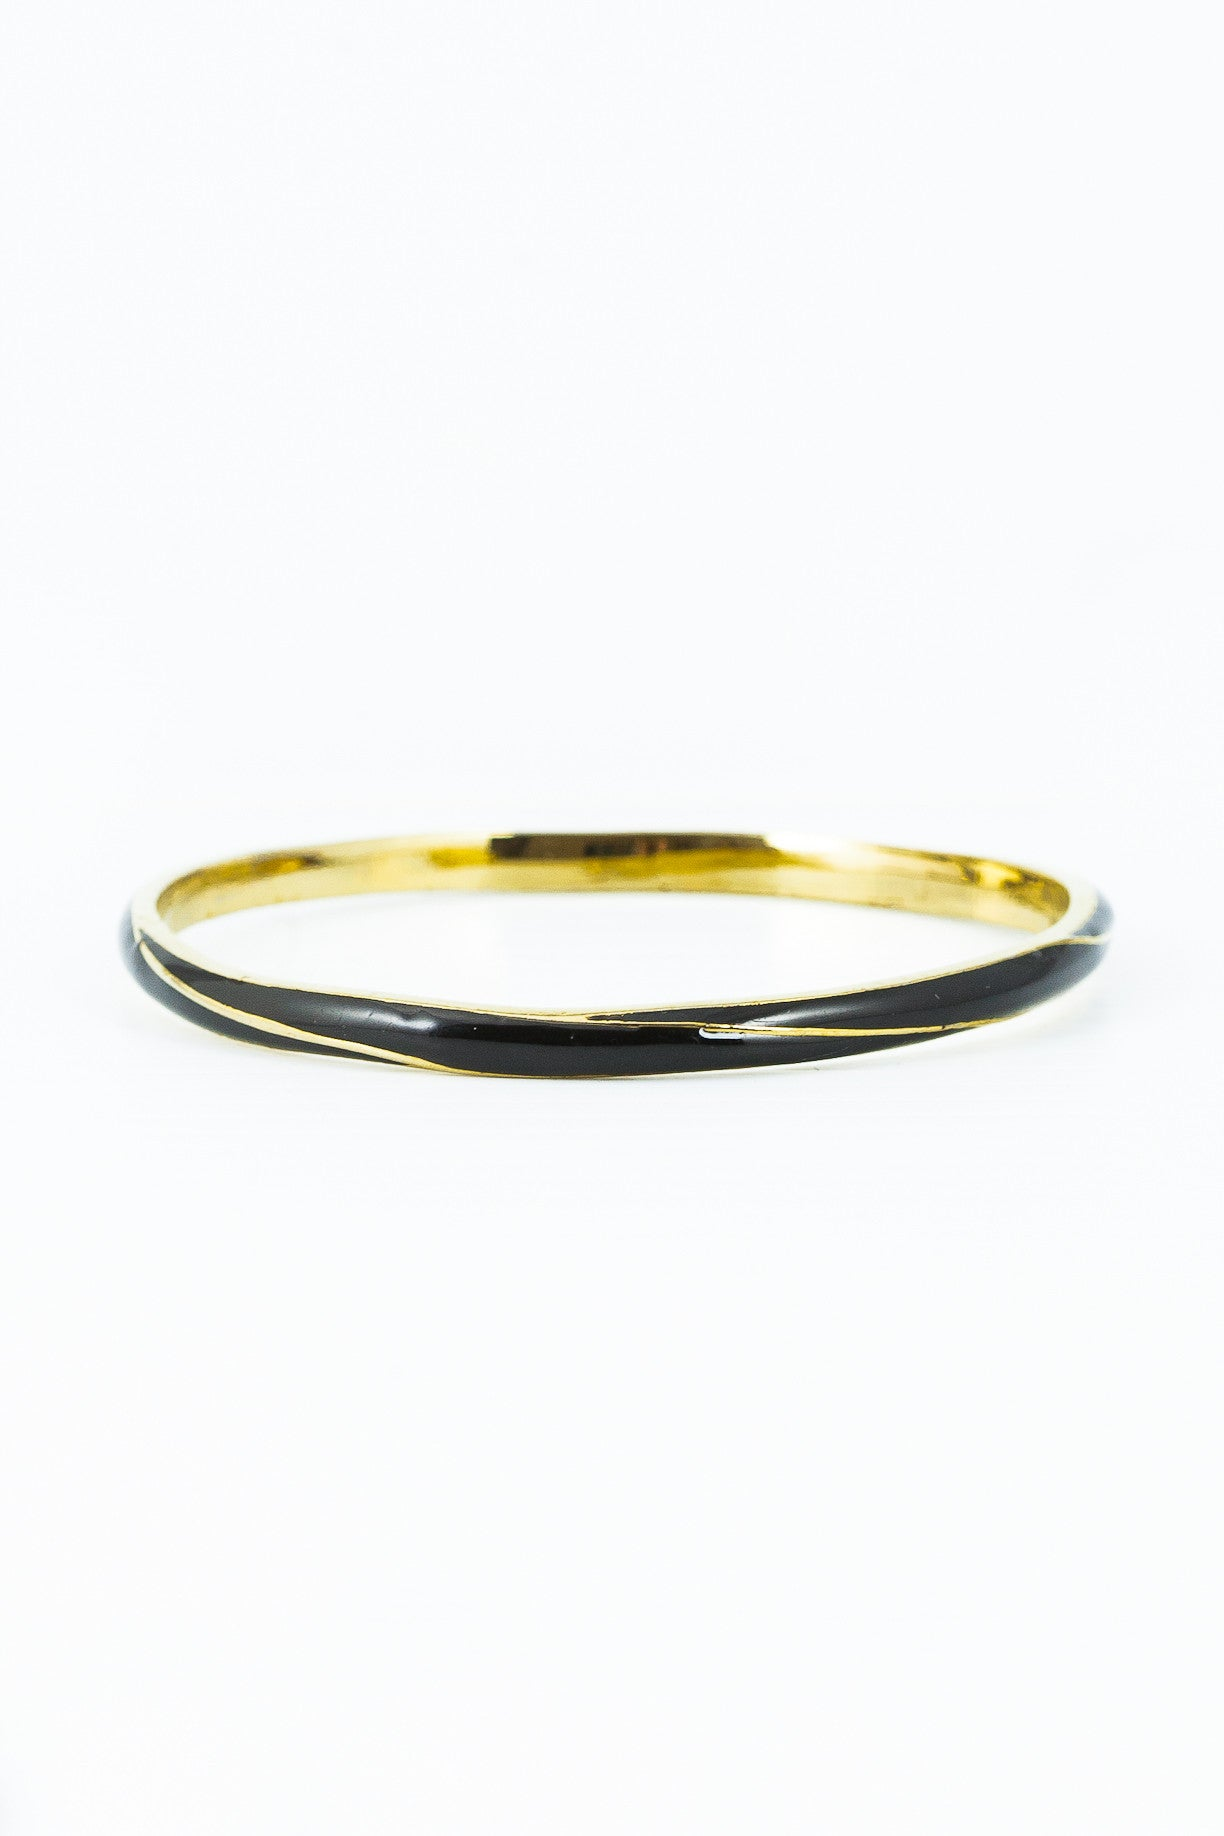 80's__Vintage__Twisted Black Enamel Skinny Bangle